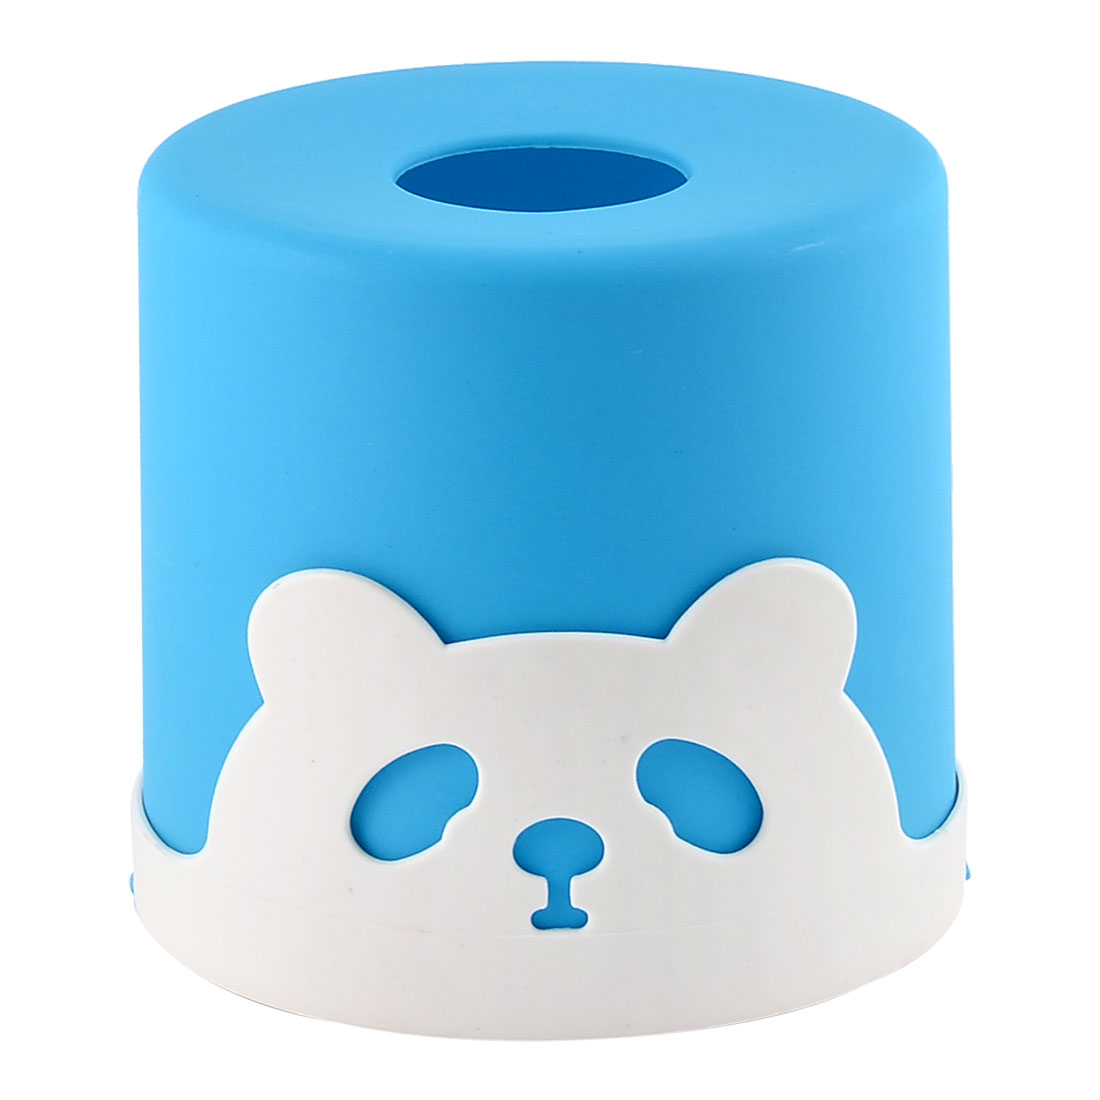 Household Car Plastic Round Panda Pattern Napkin Roll Tissue Paper Box Case Holder Cover Blue